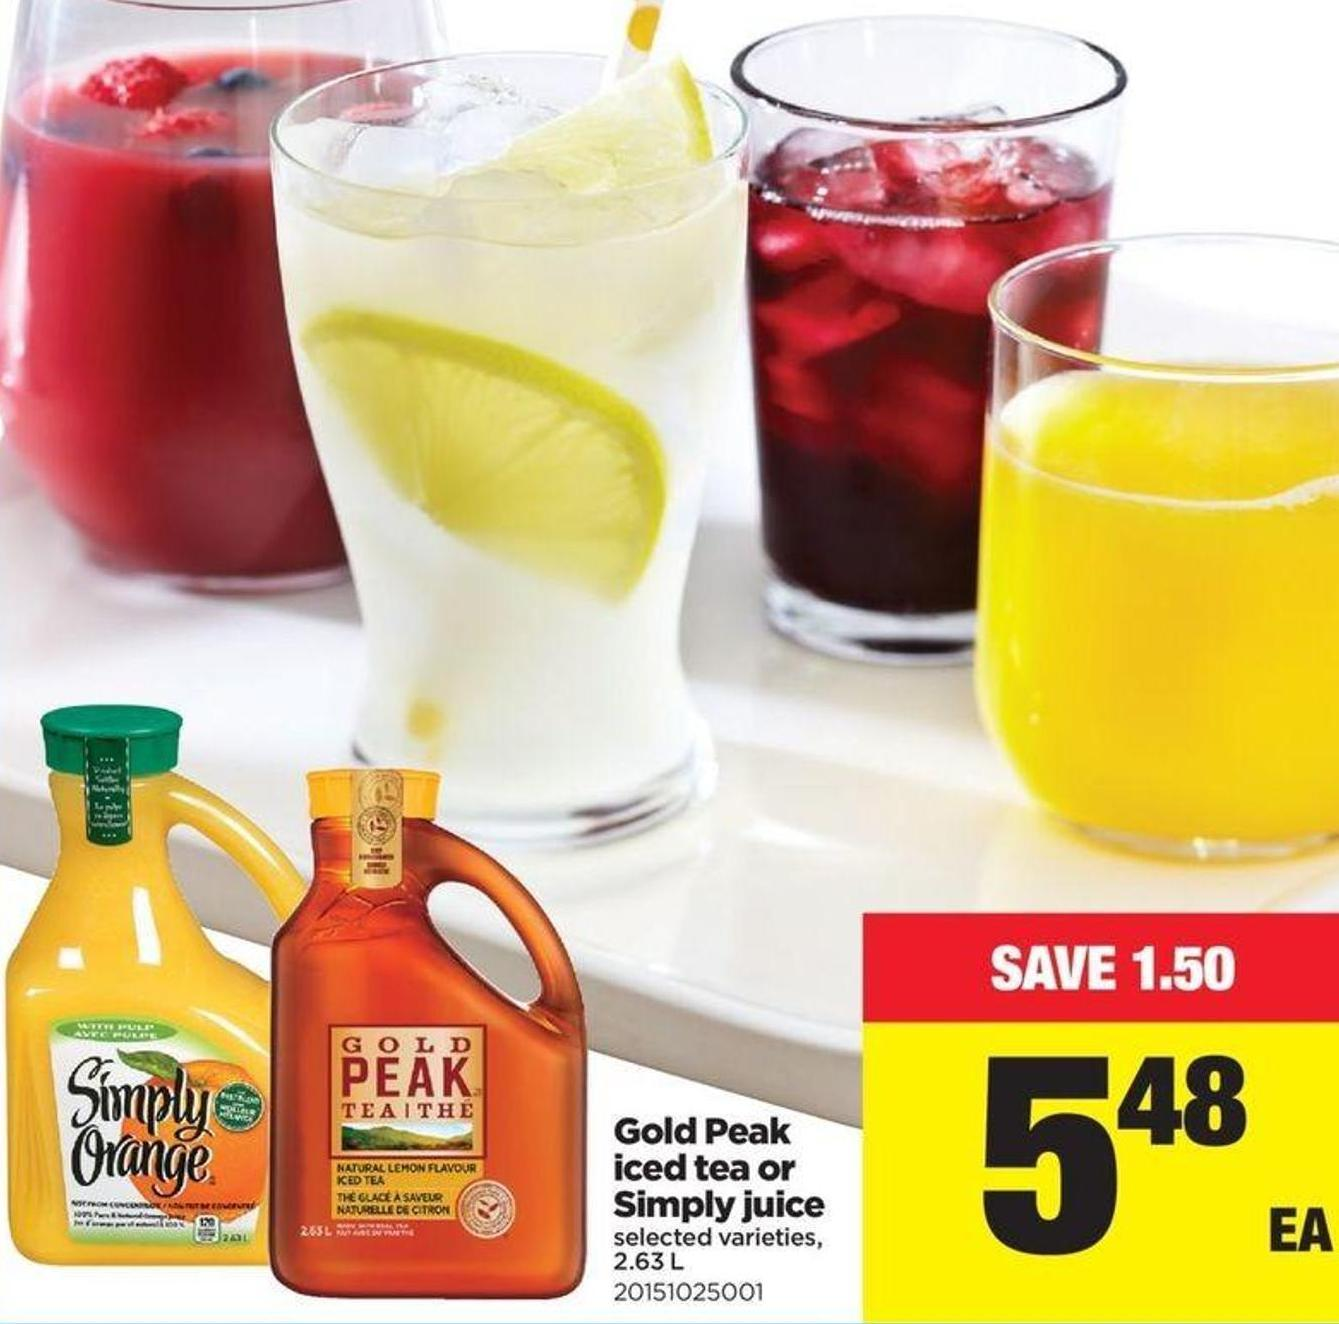 Gold Peak Iced Tea Or Simply Juice - 2.63 L